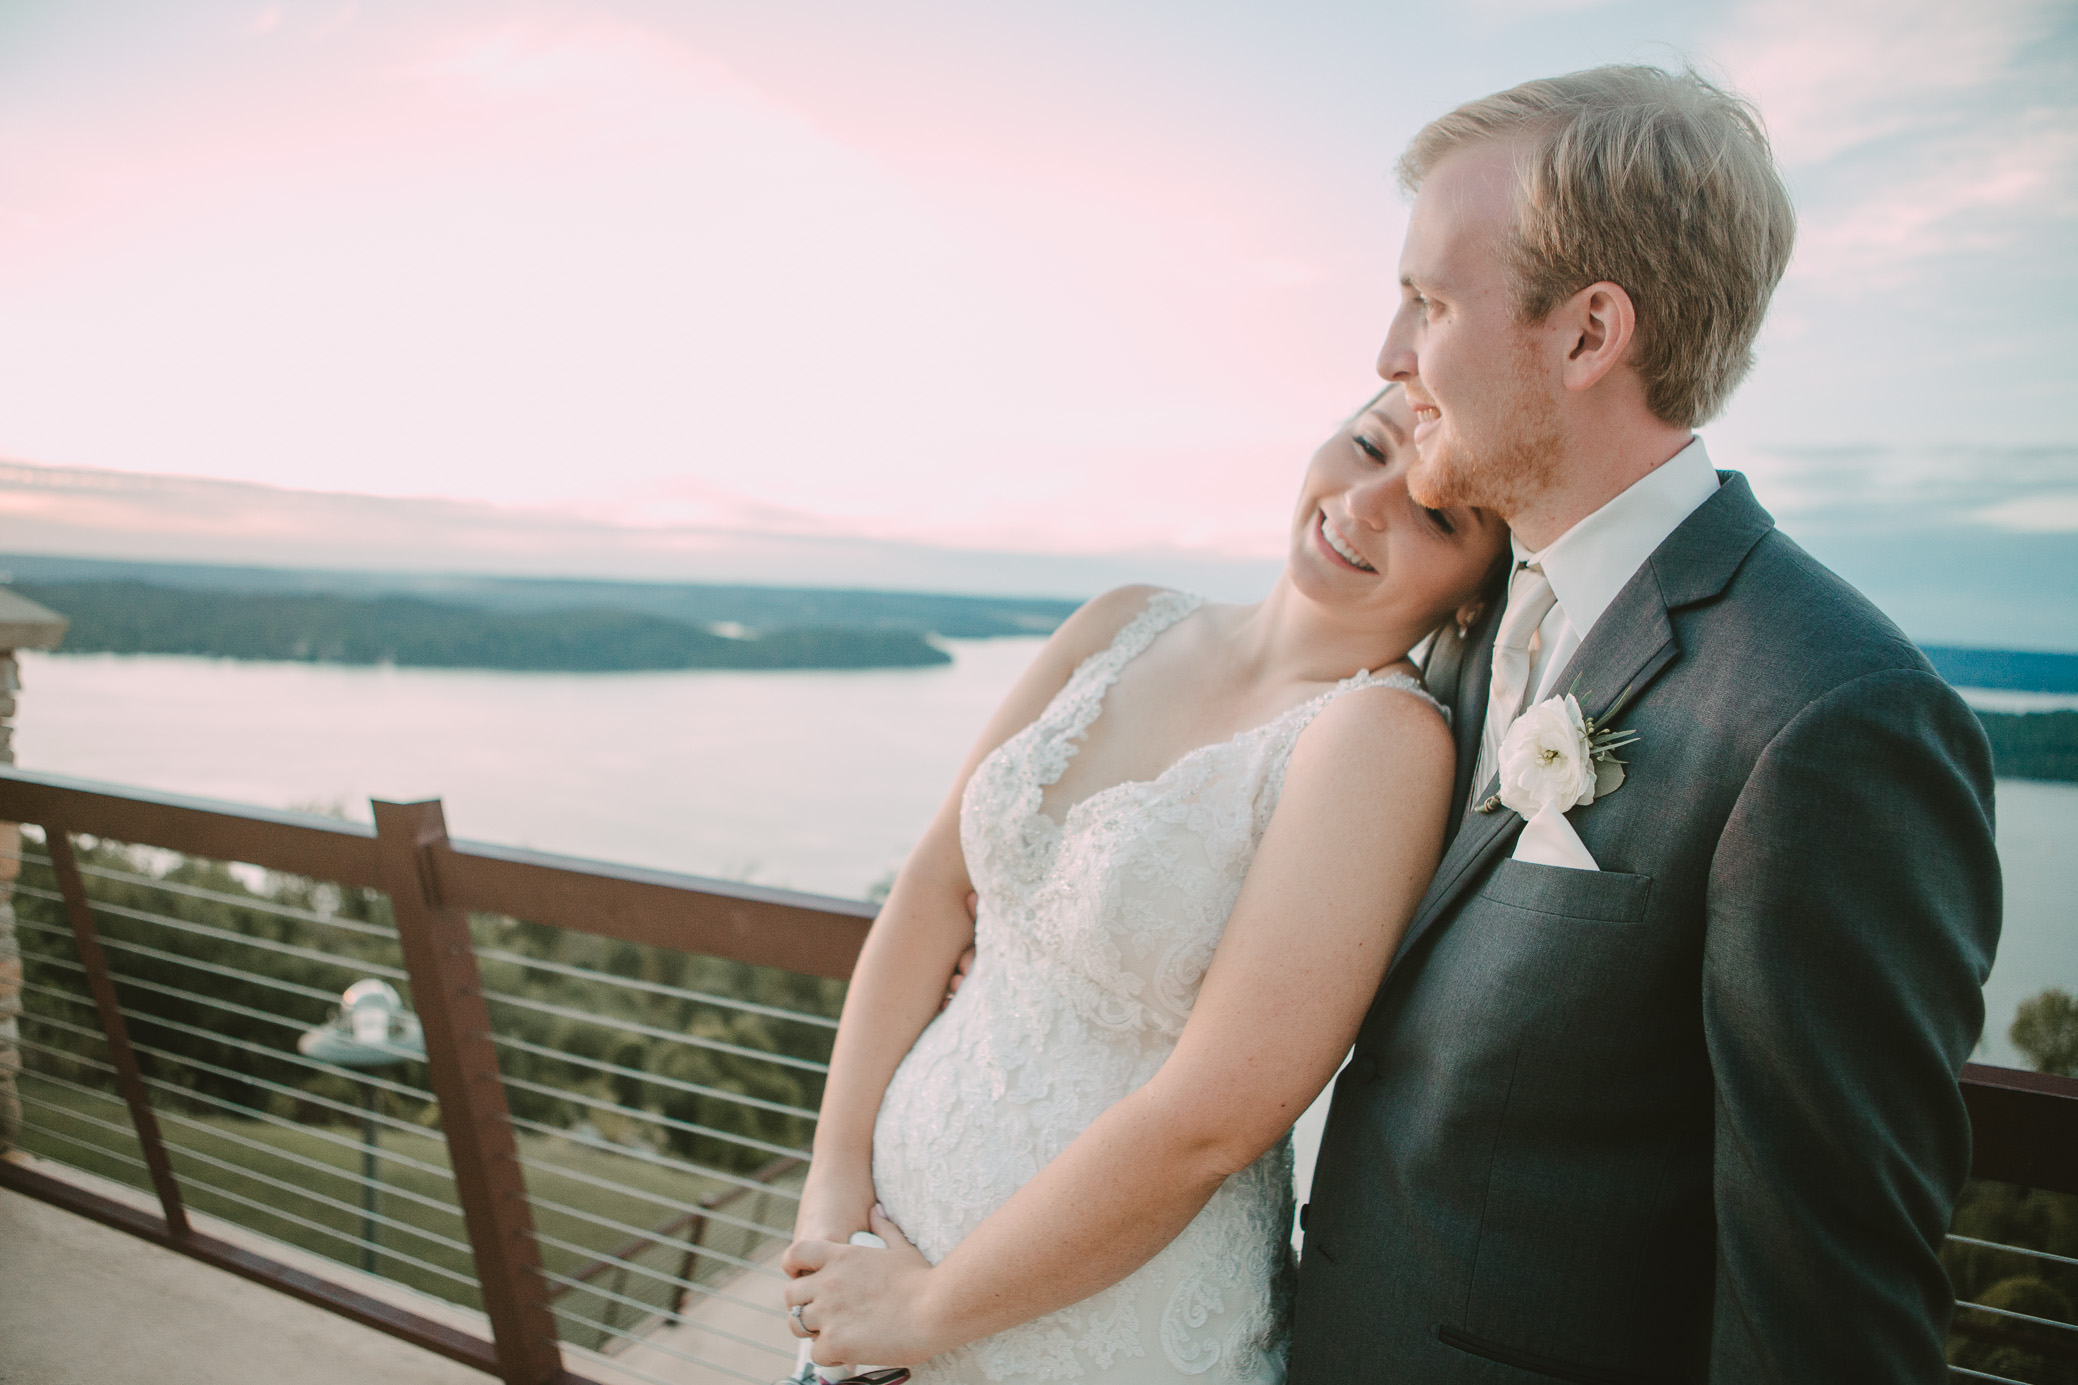 Alabama wedding photography at Lake Guntersville State Park Lodge in Guntersville, Alabama by David A. Smith of DSmithImages Wedding Photography, Portraits, and Events in the Birmingham, Alabama area